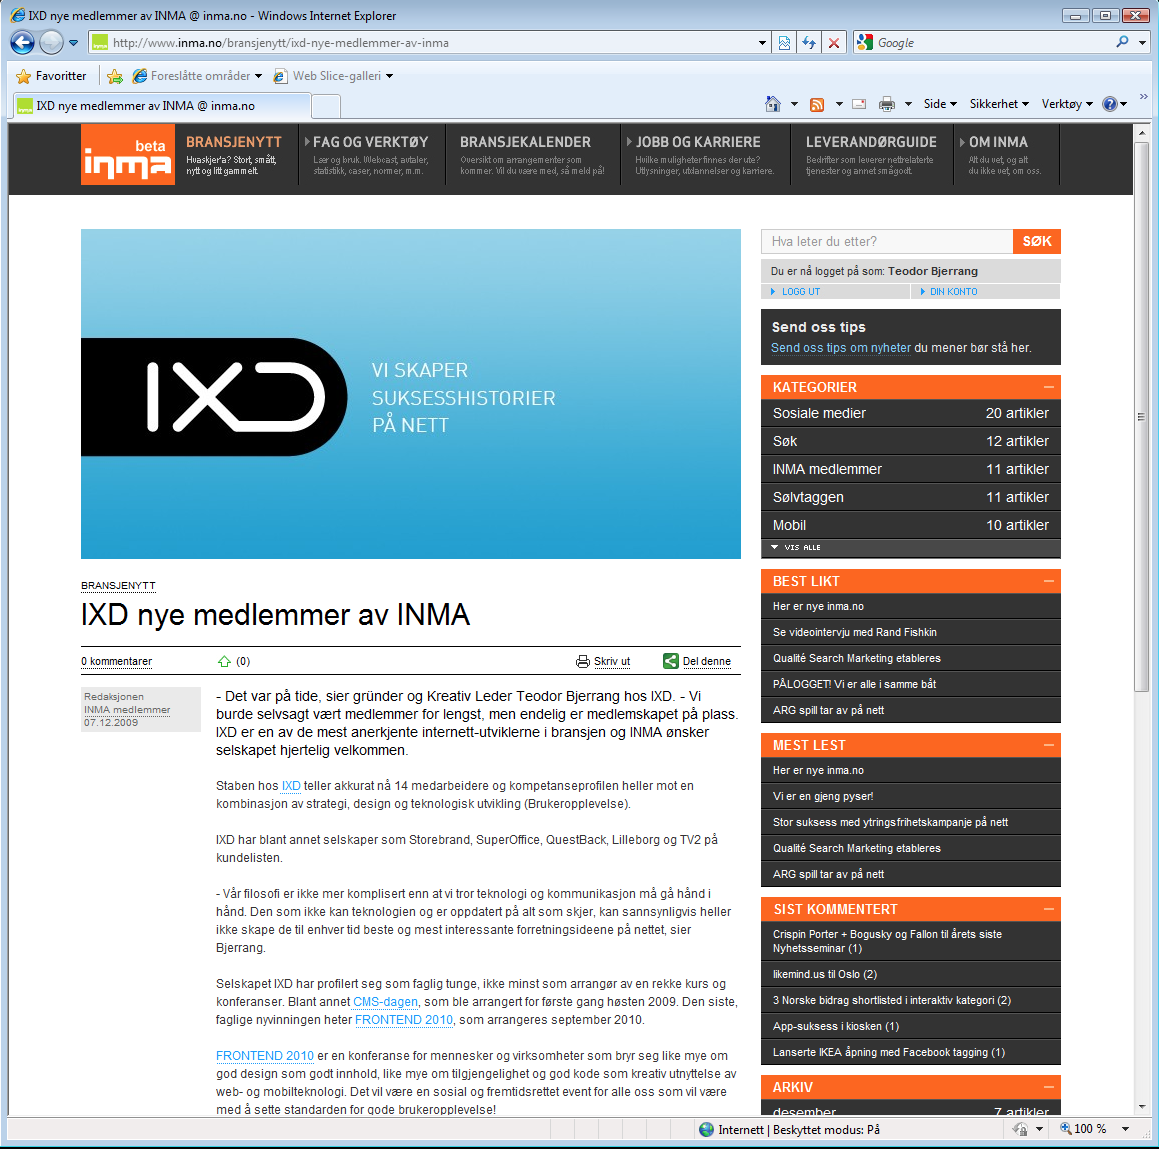 IXD joined INMA december 2009